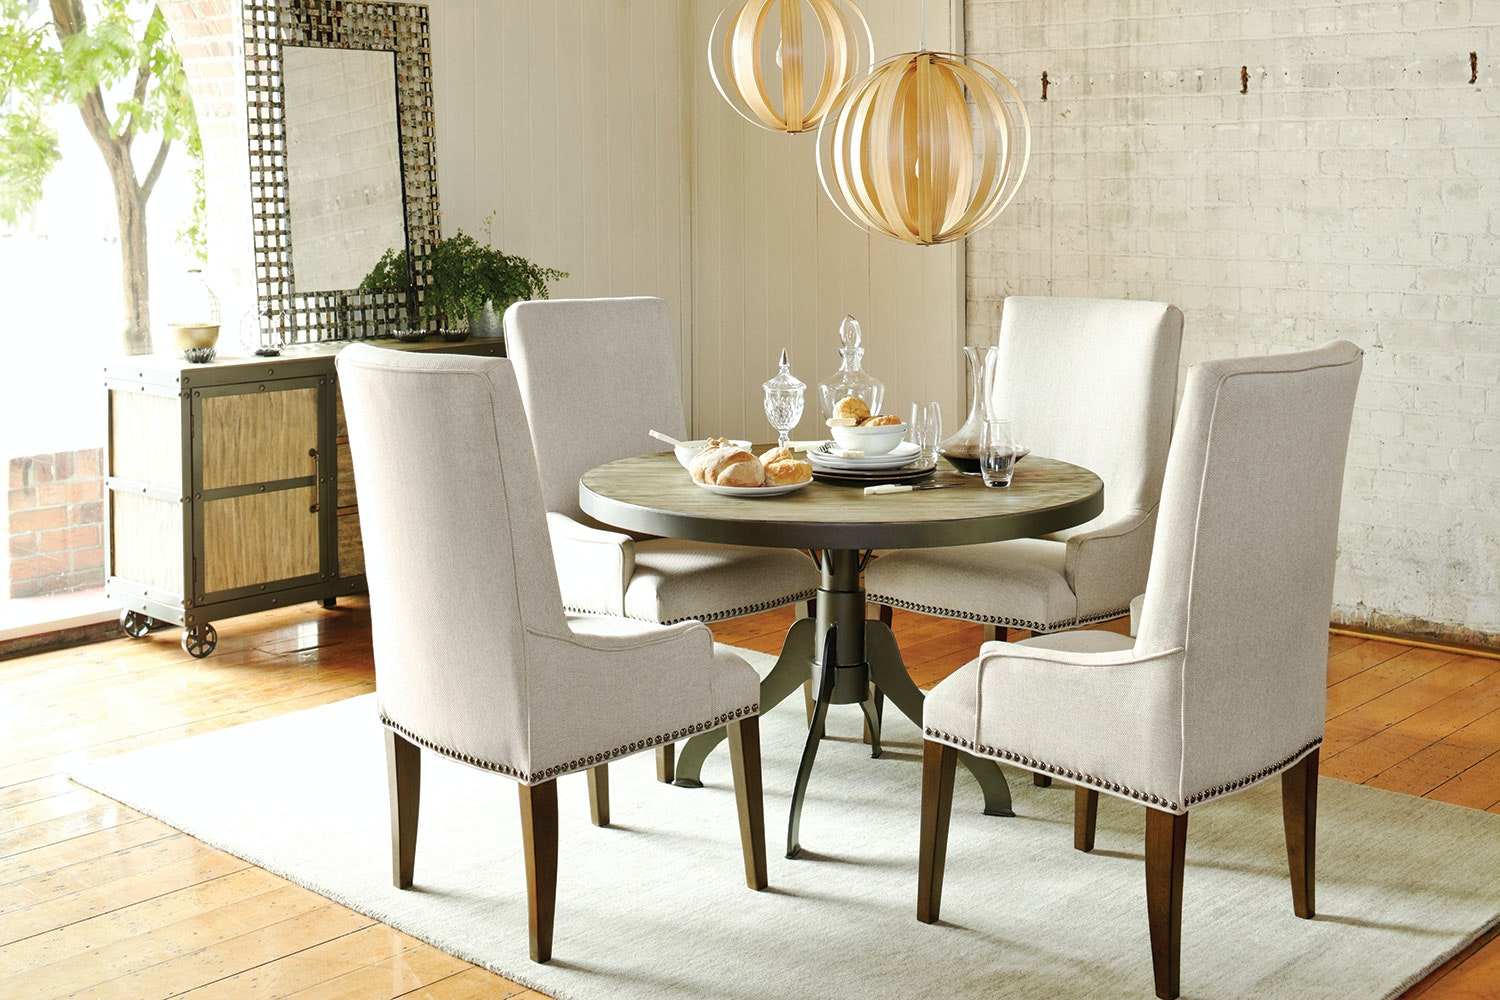 Walton 5 Piece Dining Suite by Garry Masters